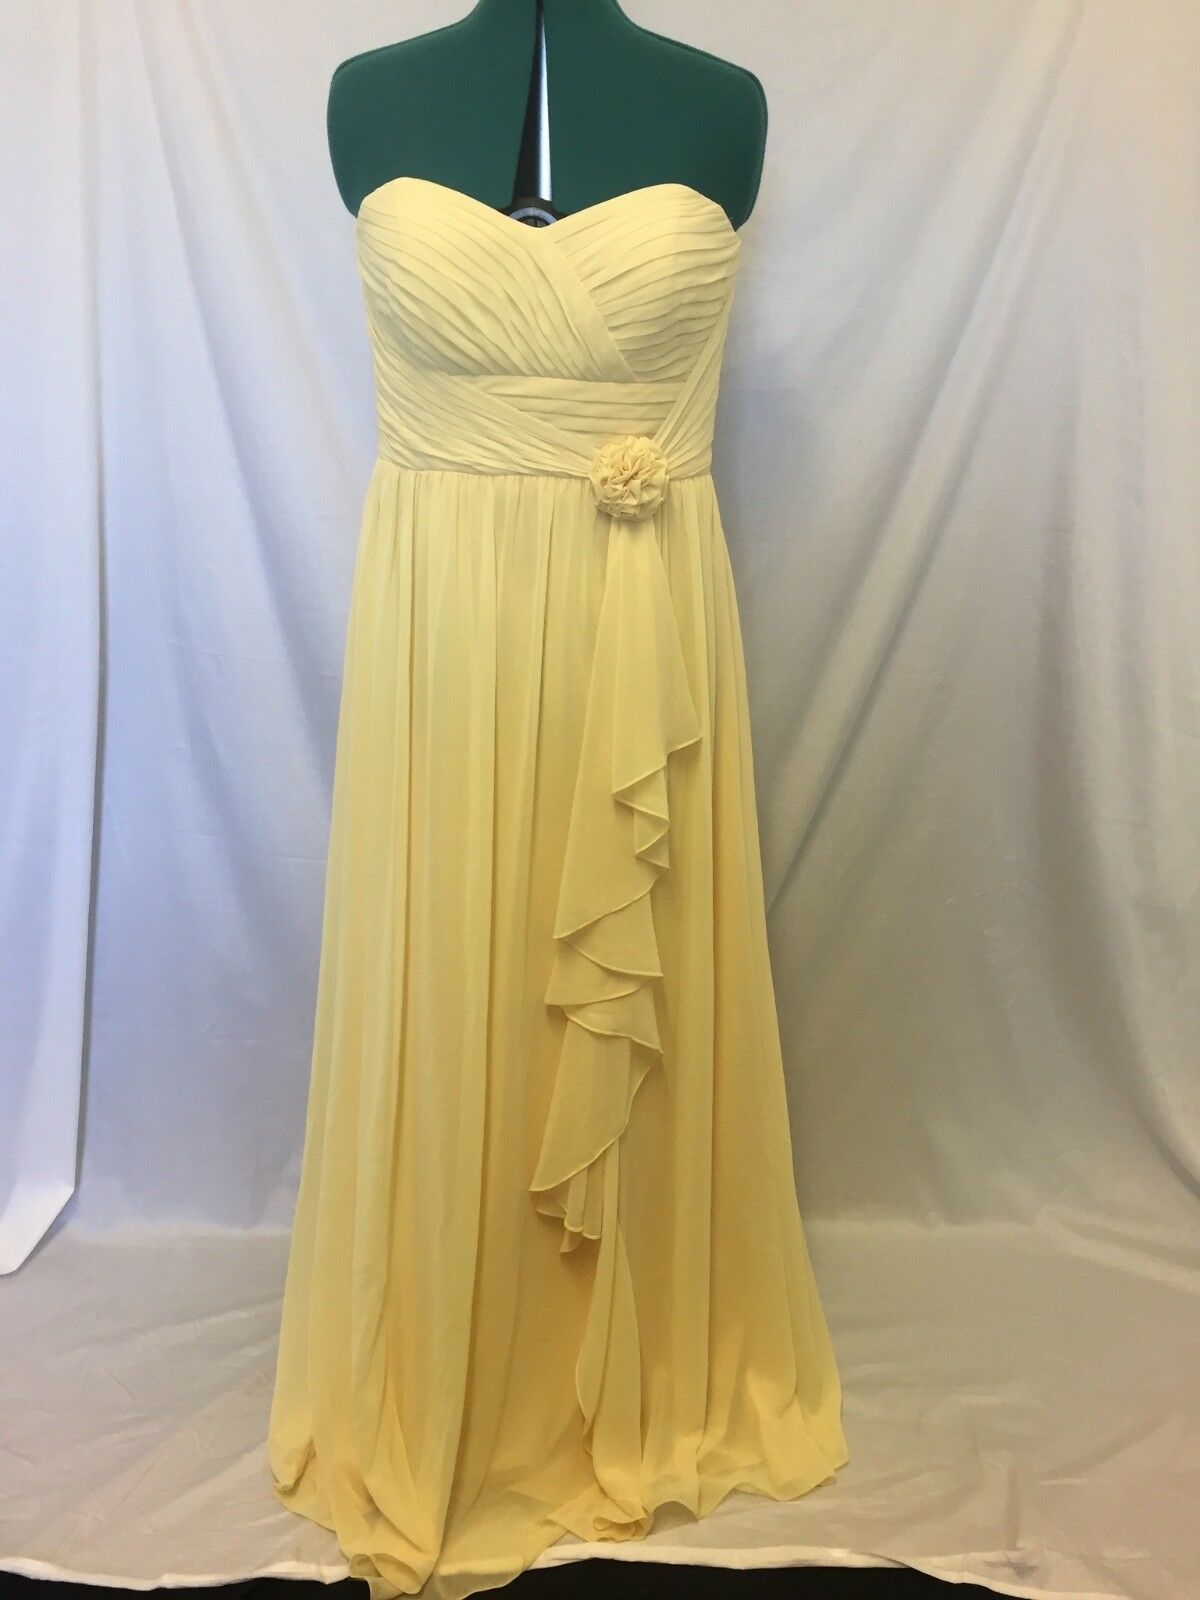 Bari Jay long Yellow pleated with flowers dress aprox size 12-14